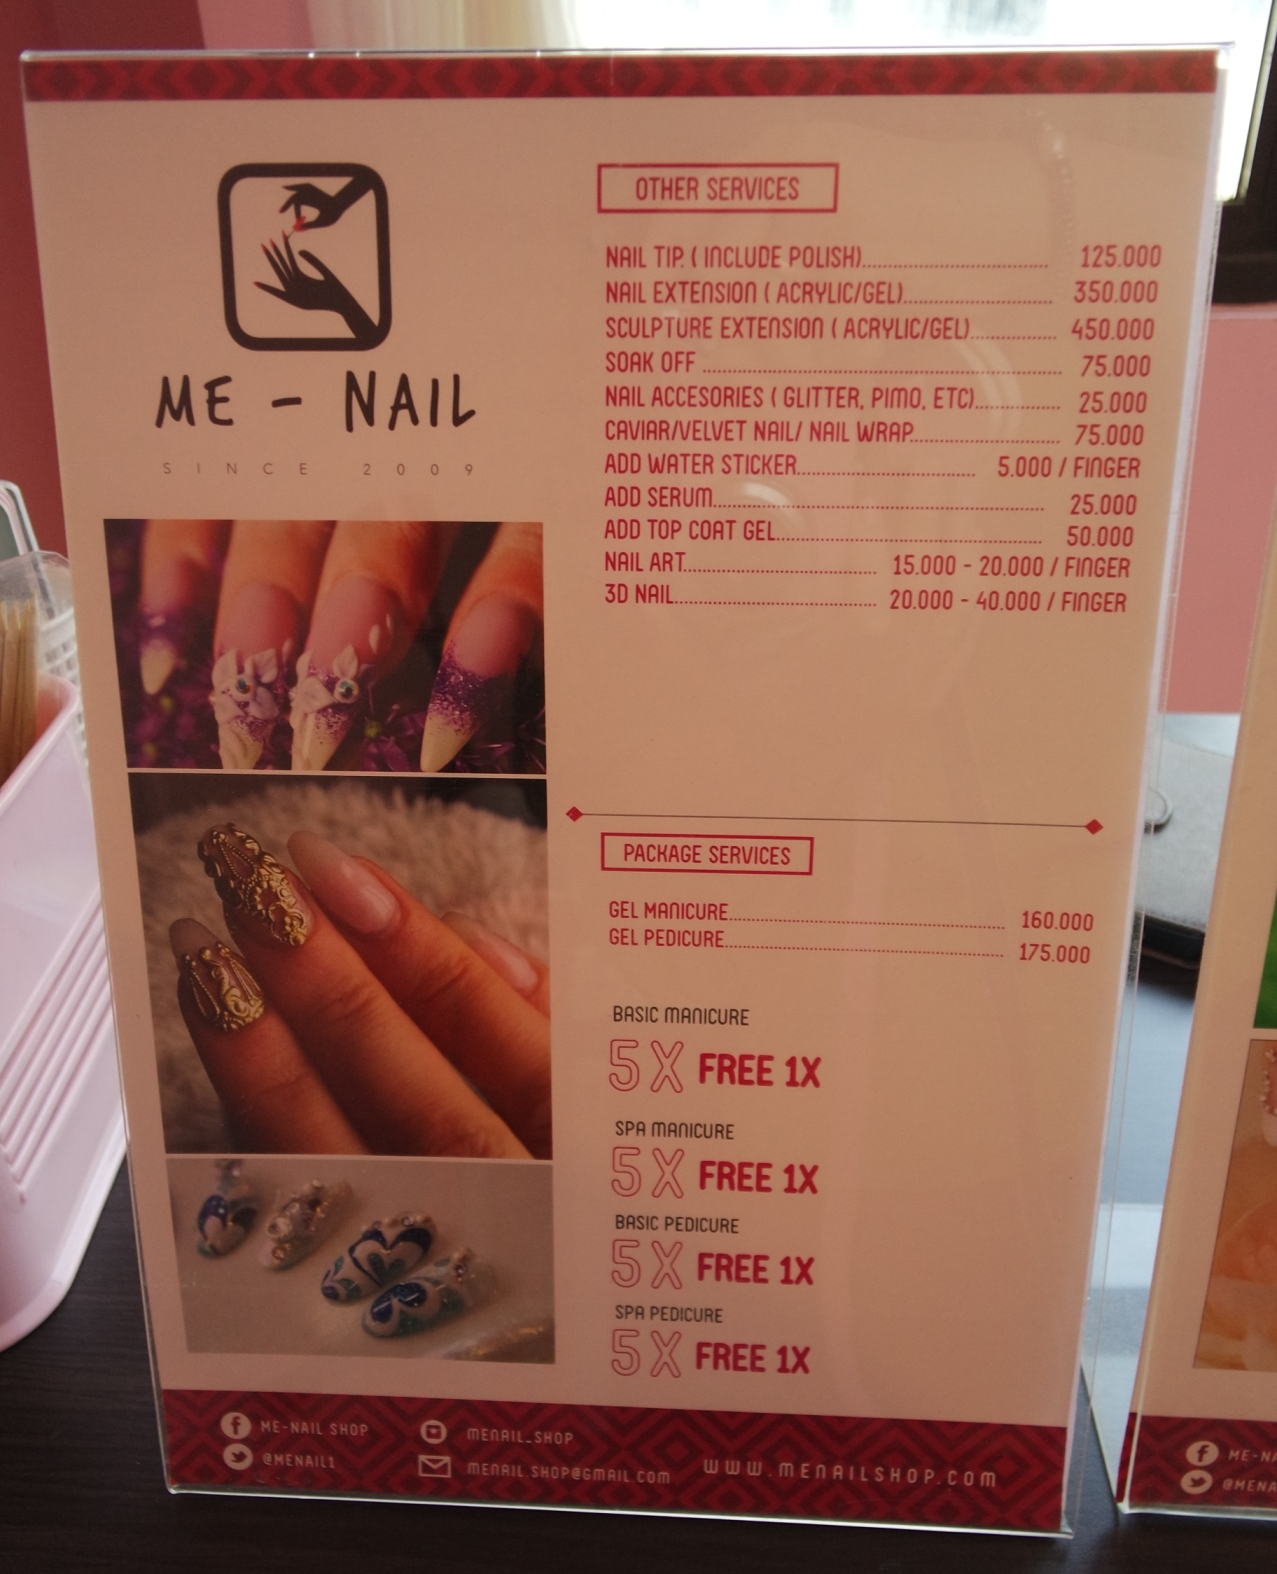 Review : Nail Art at Me-Nail (SPONSORED) - Pink and Undecided